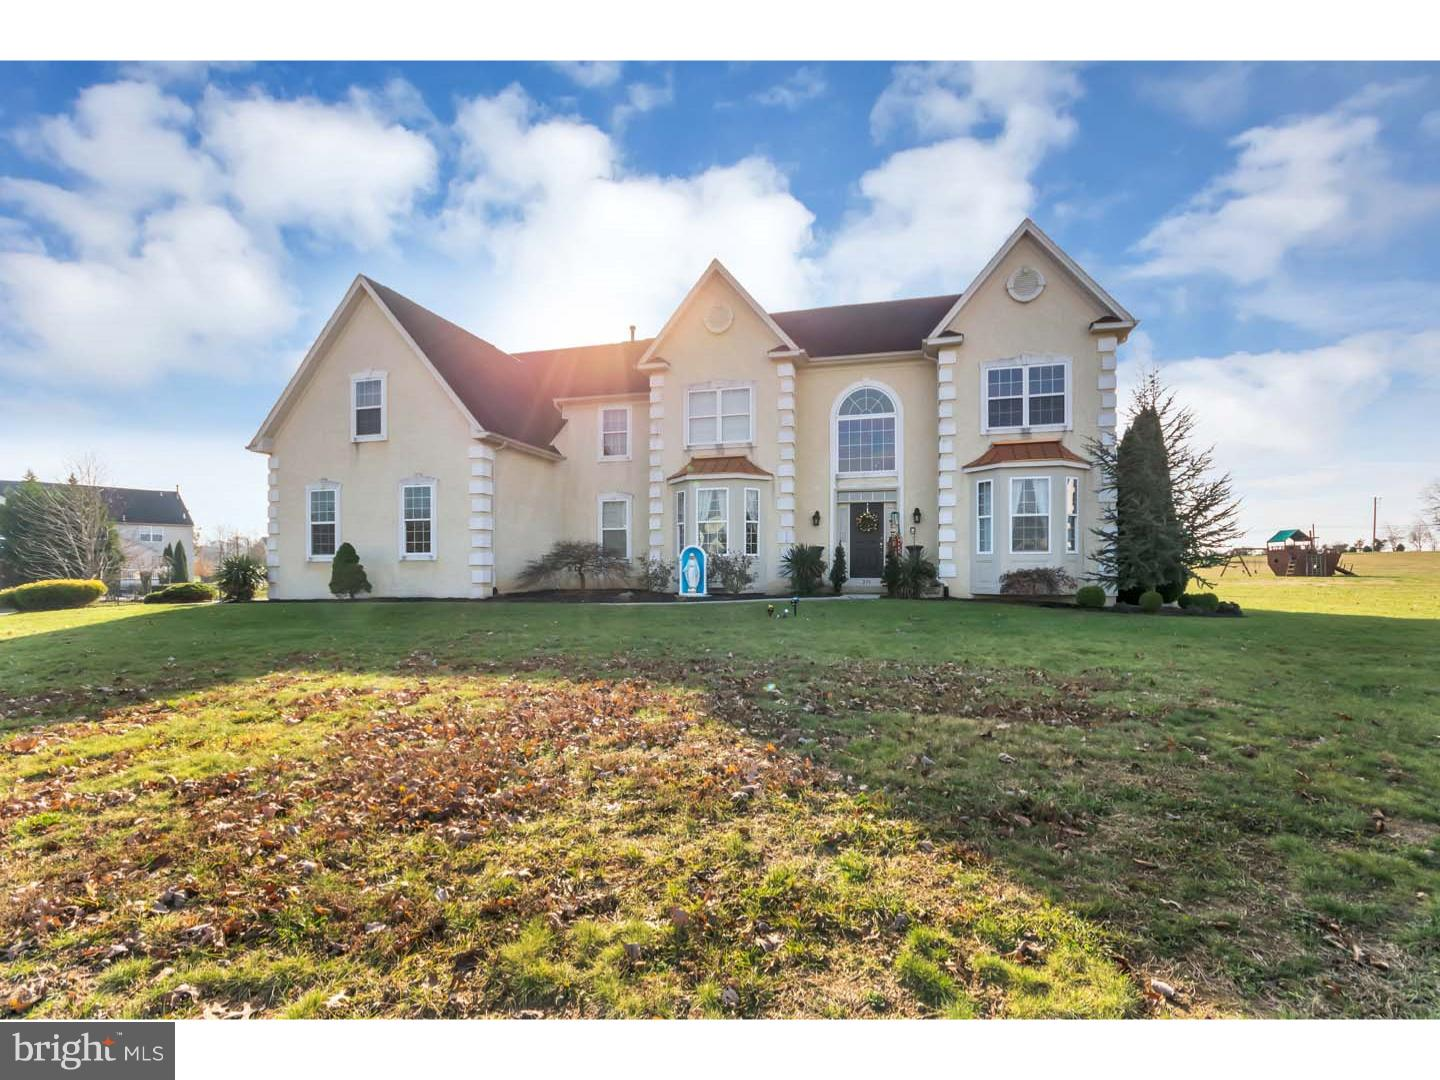 Single Family Home for Sale at 271 JENNINGS WAY Mickleton, New Jersey 08056 United States